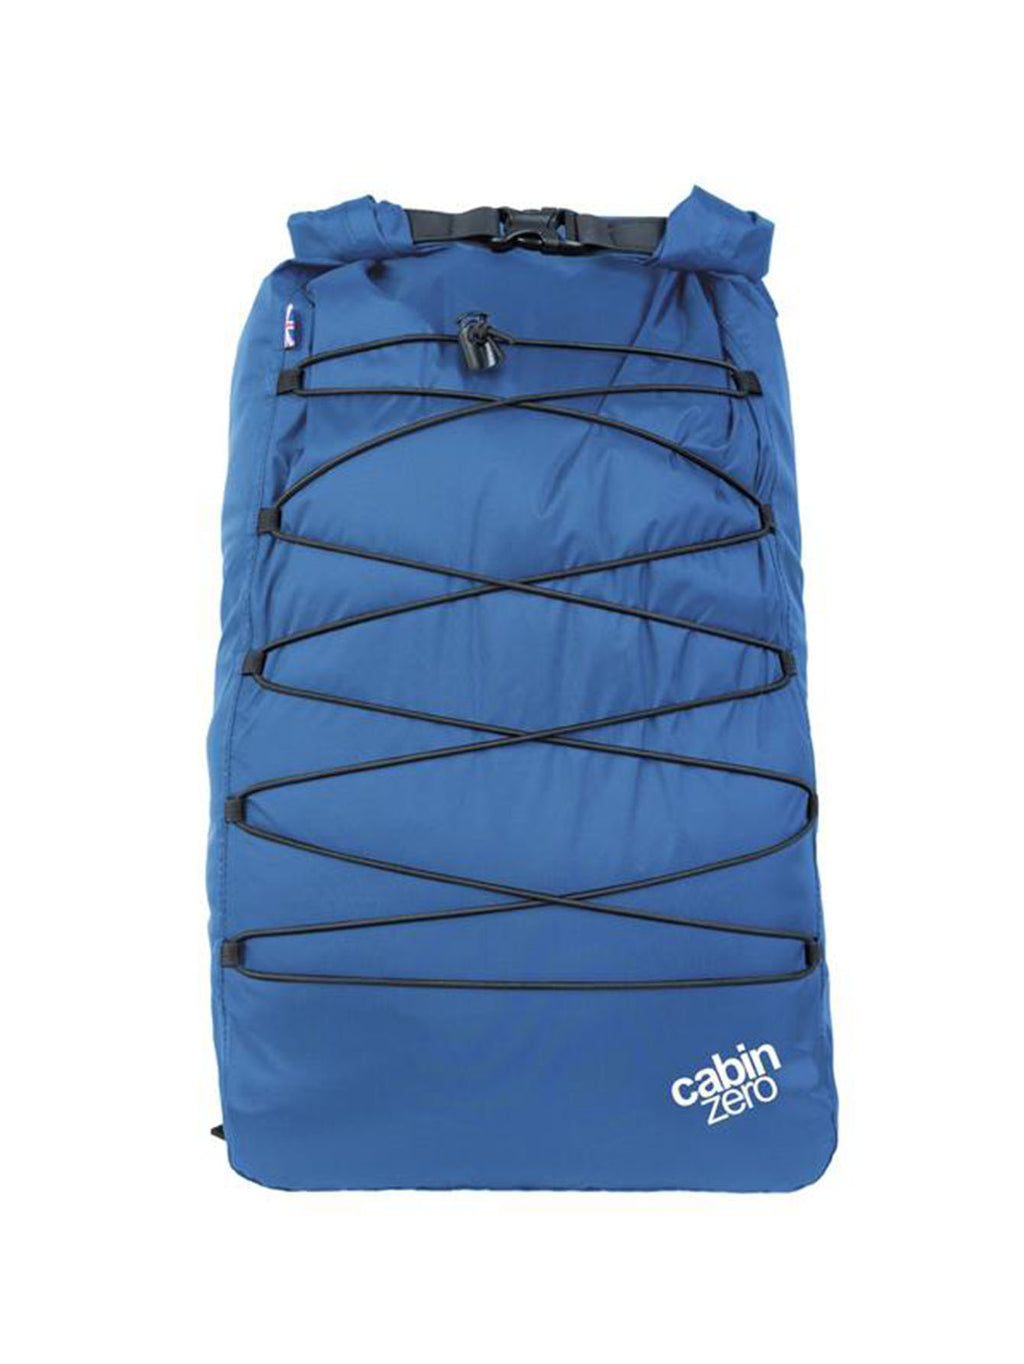 Cabinzero Adventure Dry Waterproof Cross Body Bay 30L in Atlantic Blue Color